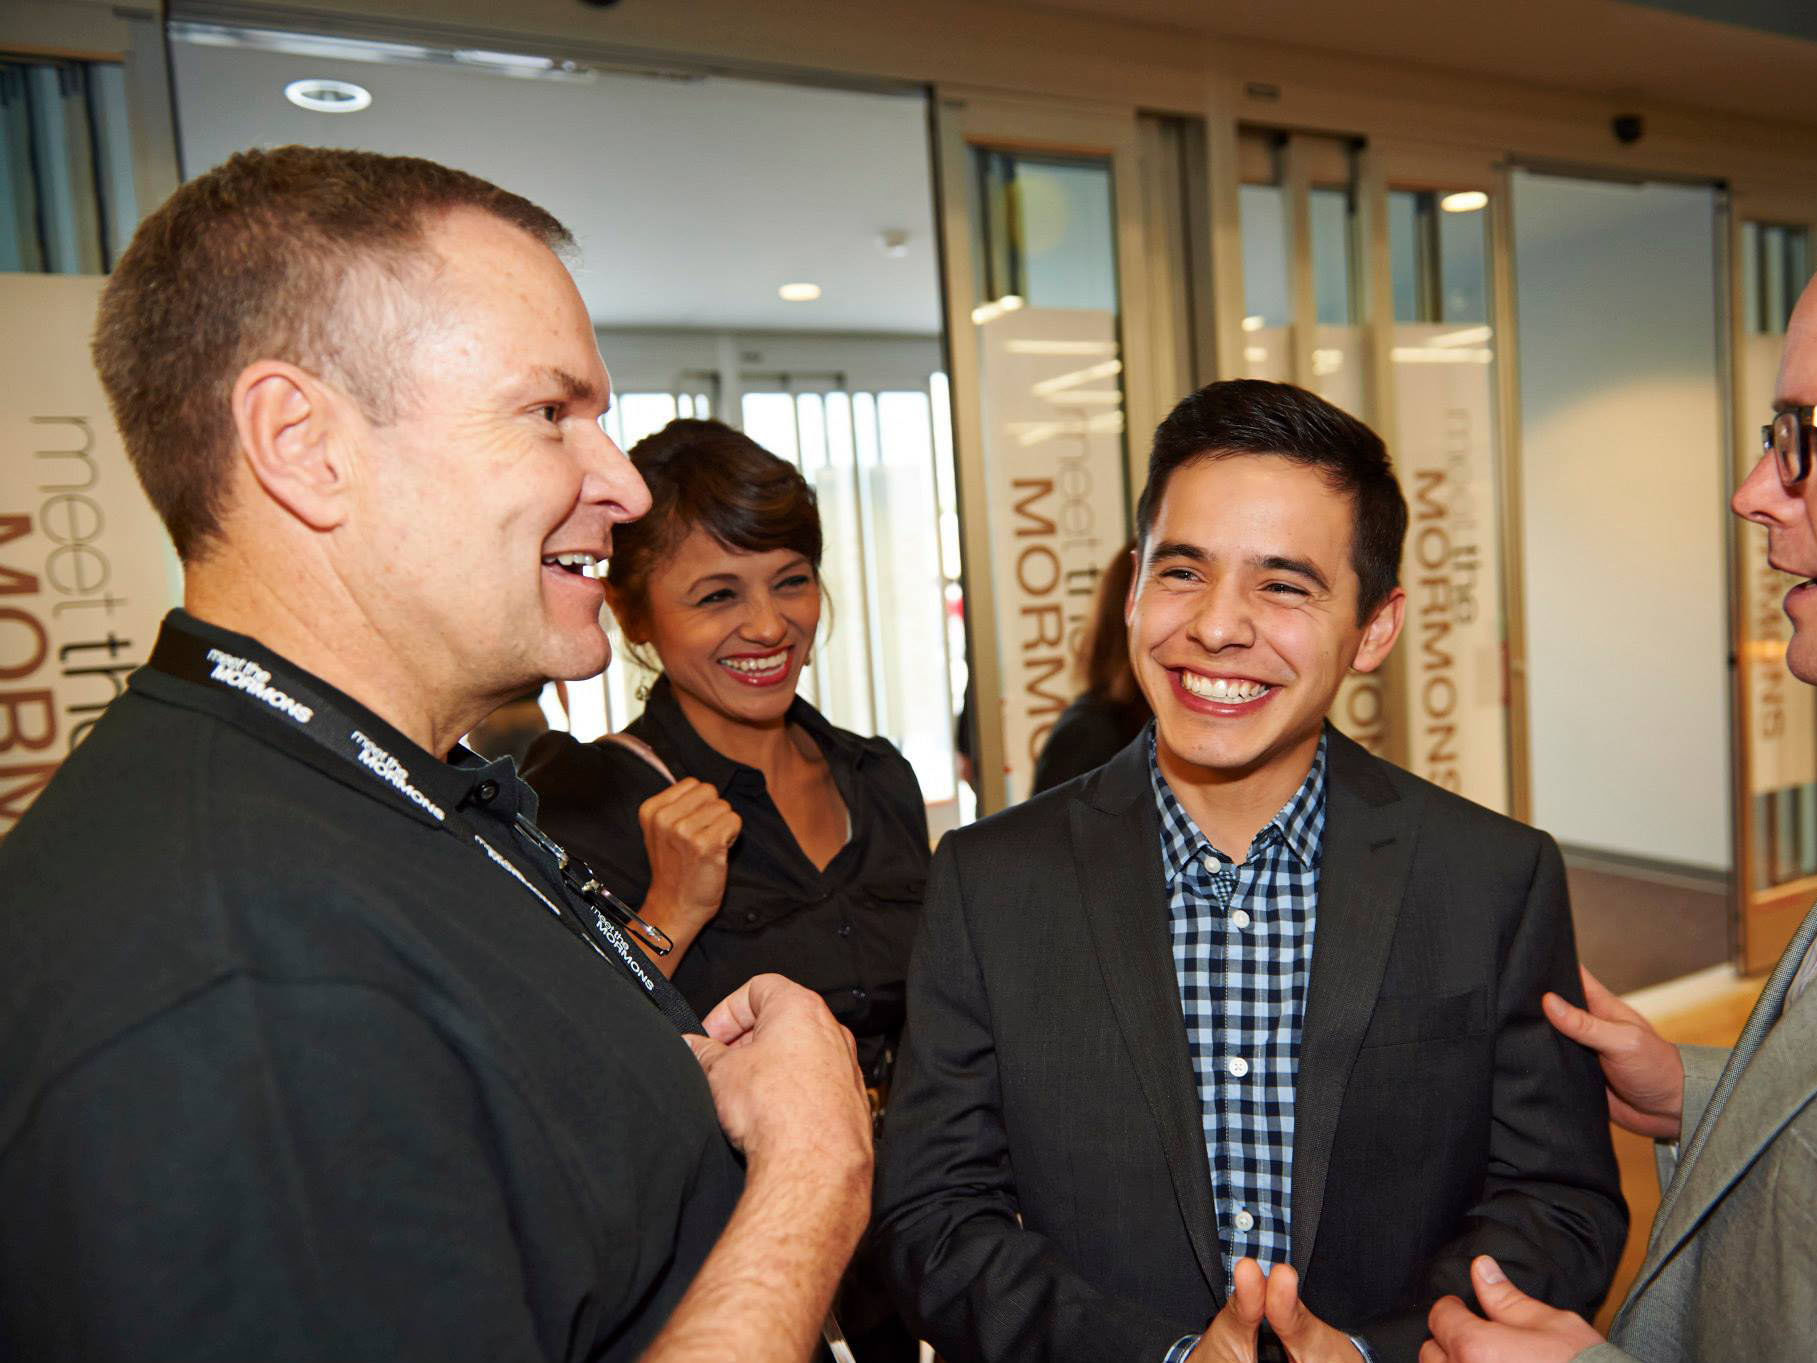 """LDS Public Affairs Senior Manager Scott Trotter visits with David Archuleta behind the scenes at the """"Meet the Mormons"""" premiere. (John Dye)"""